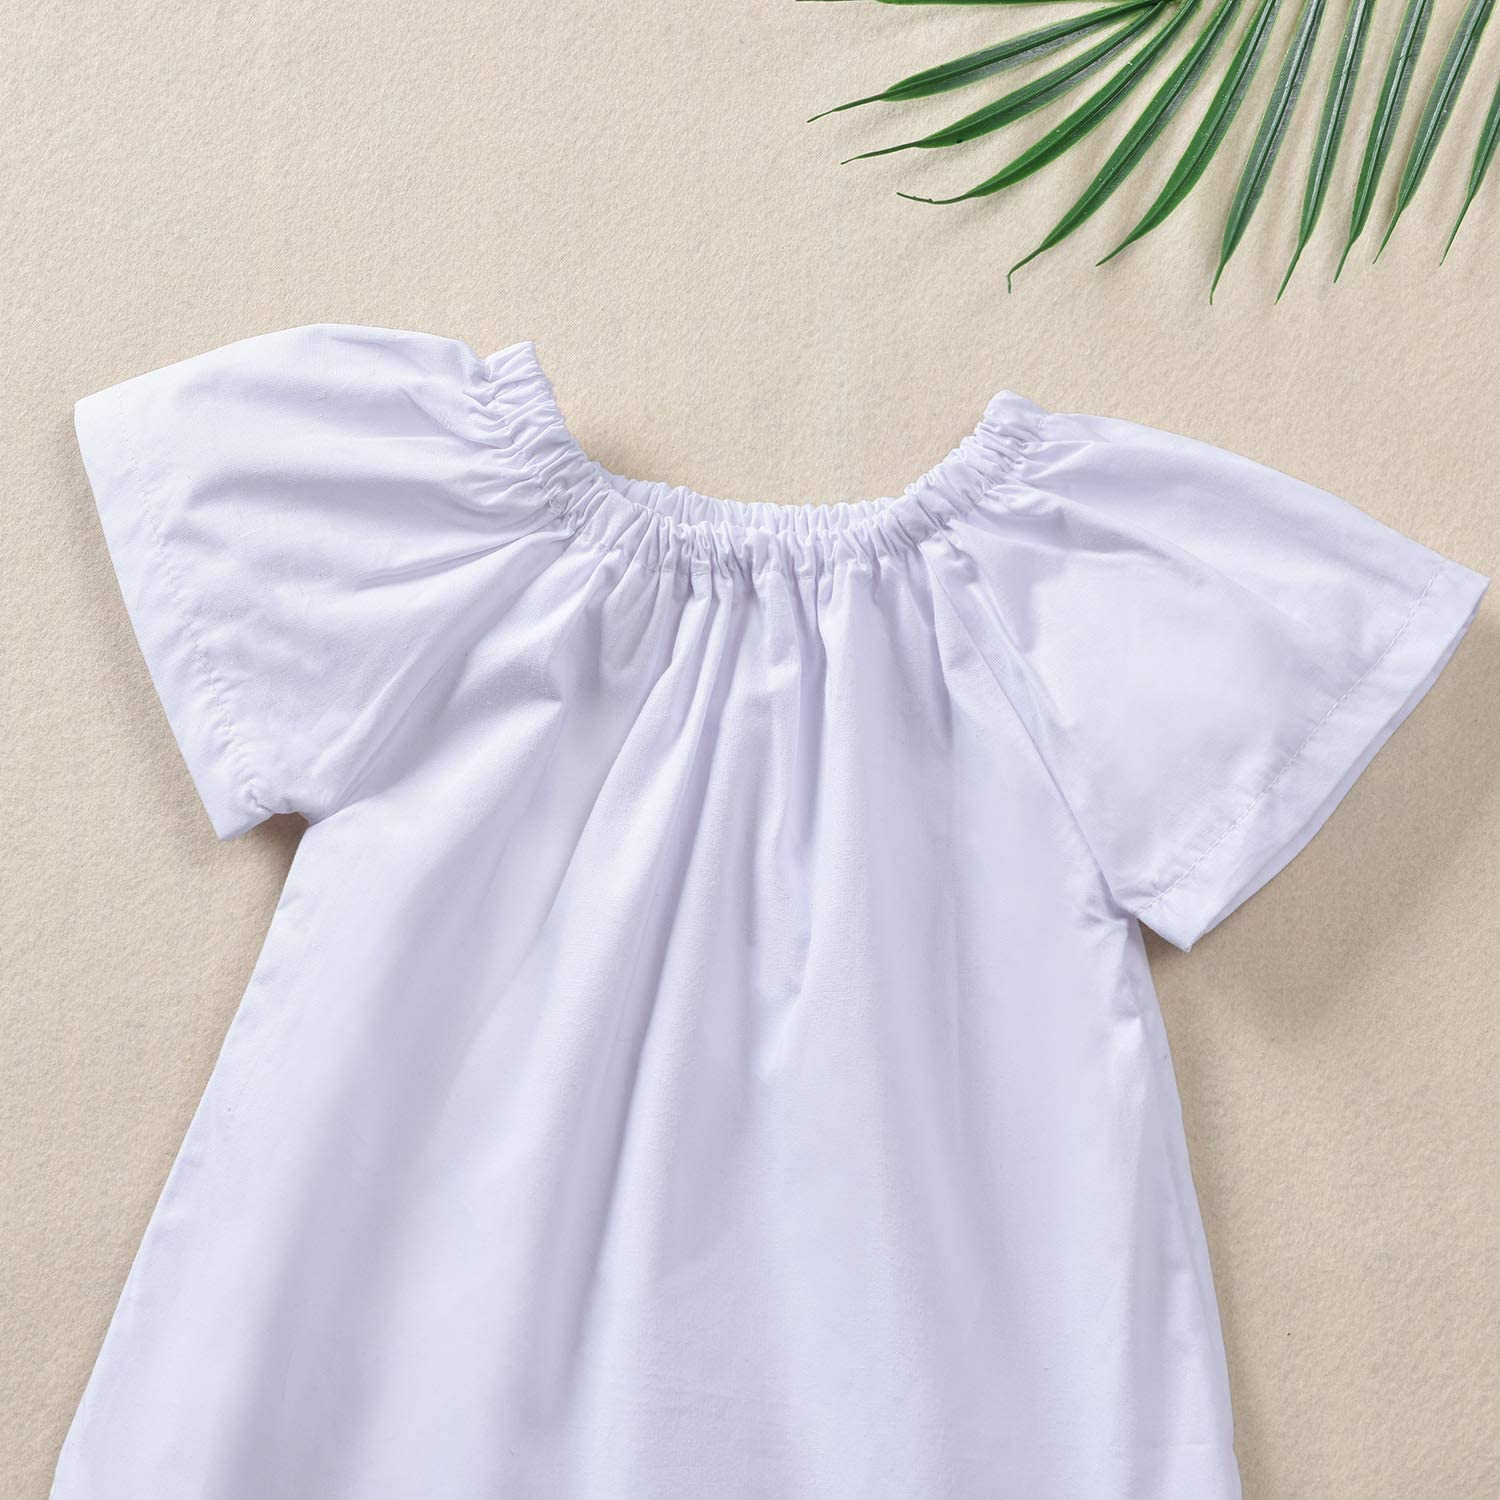 Headband Sets 18-24months Newborn Baby Girl Anchor Outfits Short Sleeve Tops 100 Short Pants White